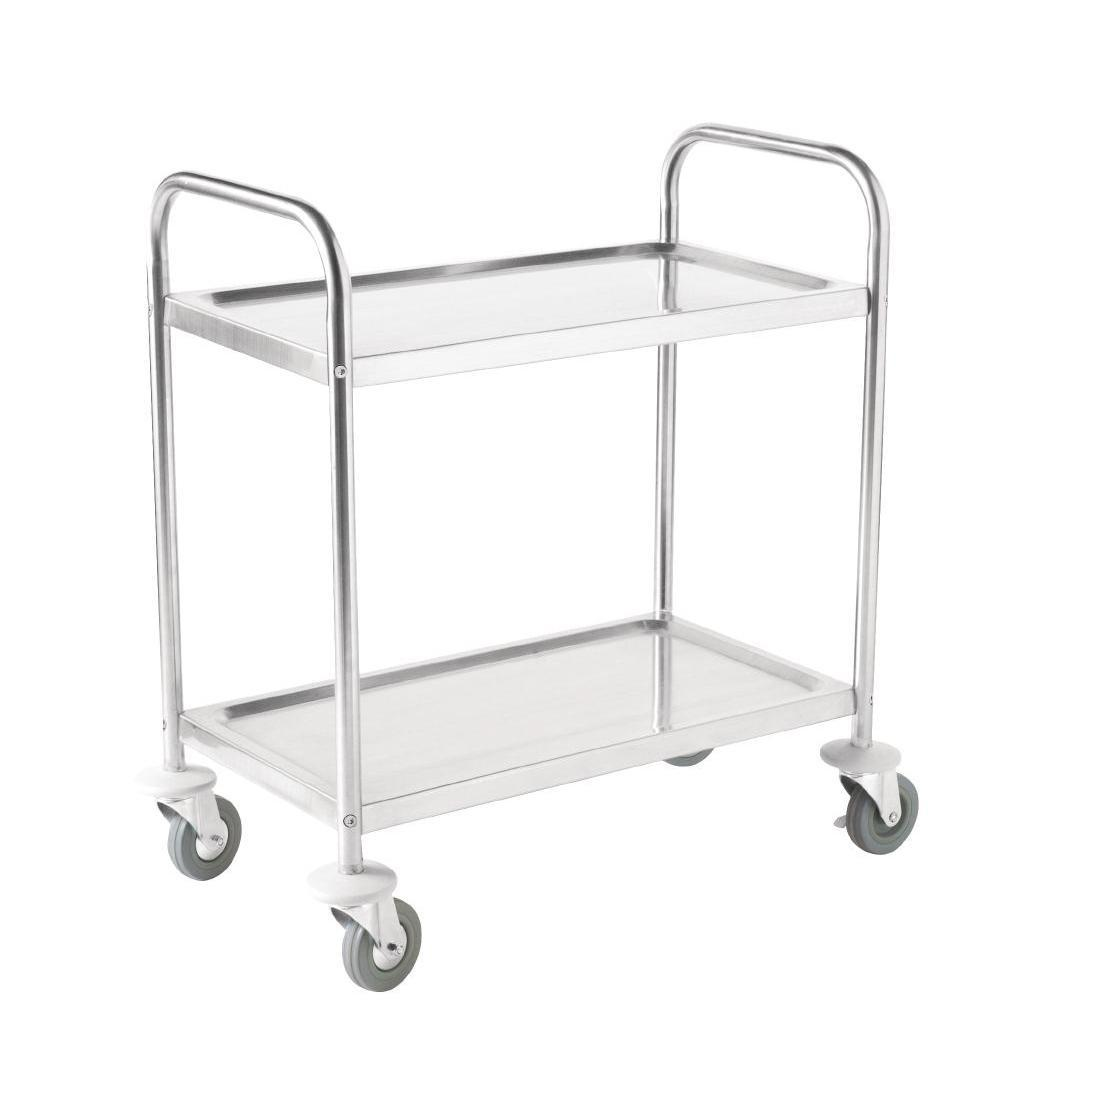 Vogue Stainless Steel 2 Tier Clearing Trolley Small - Each - F996